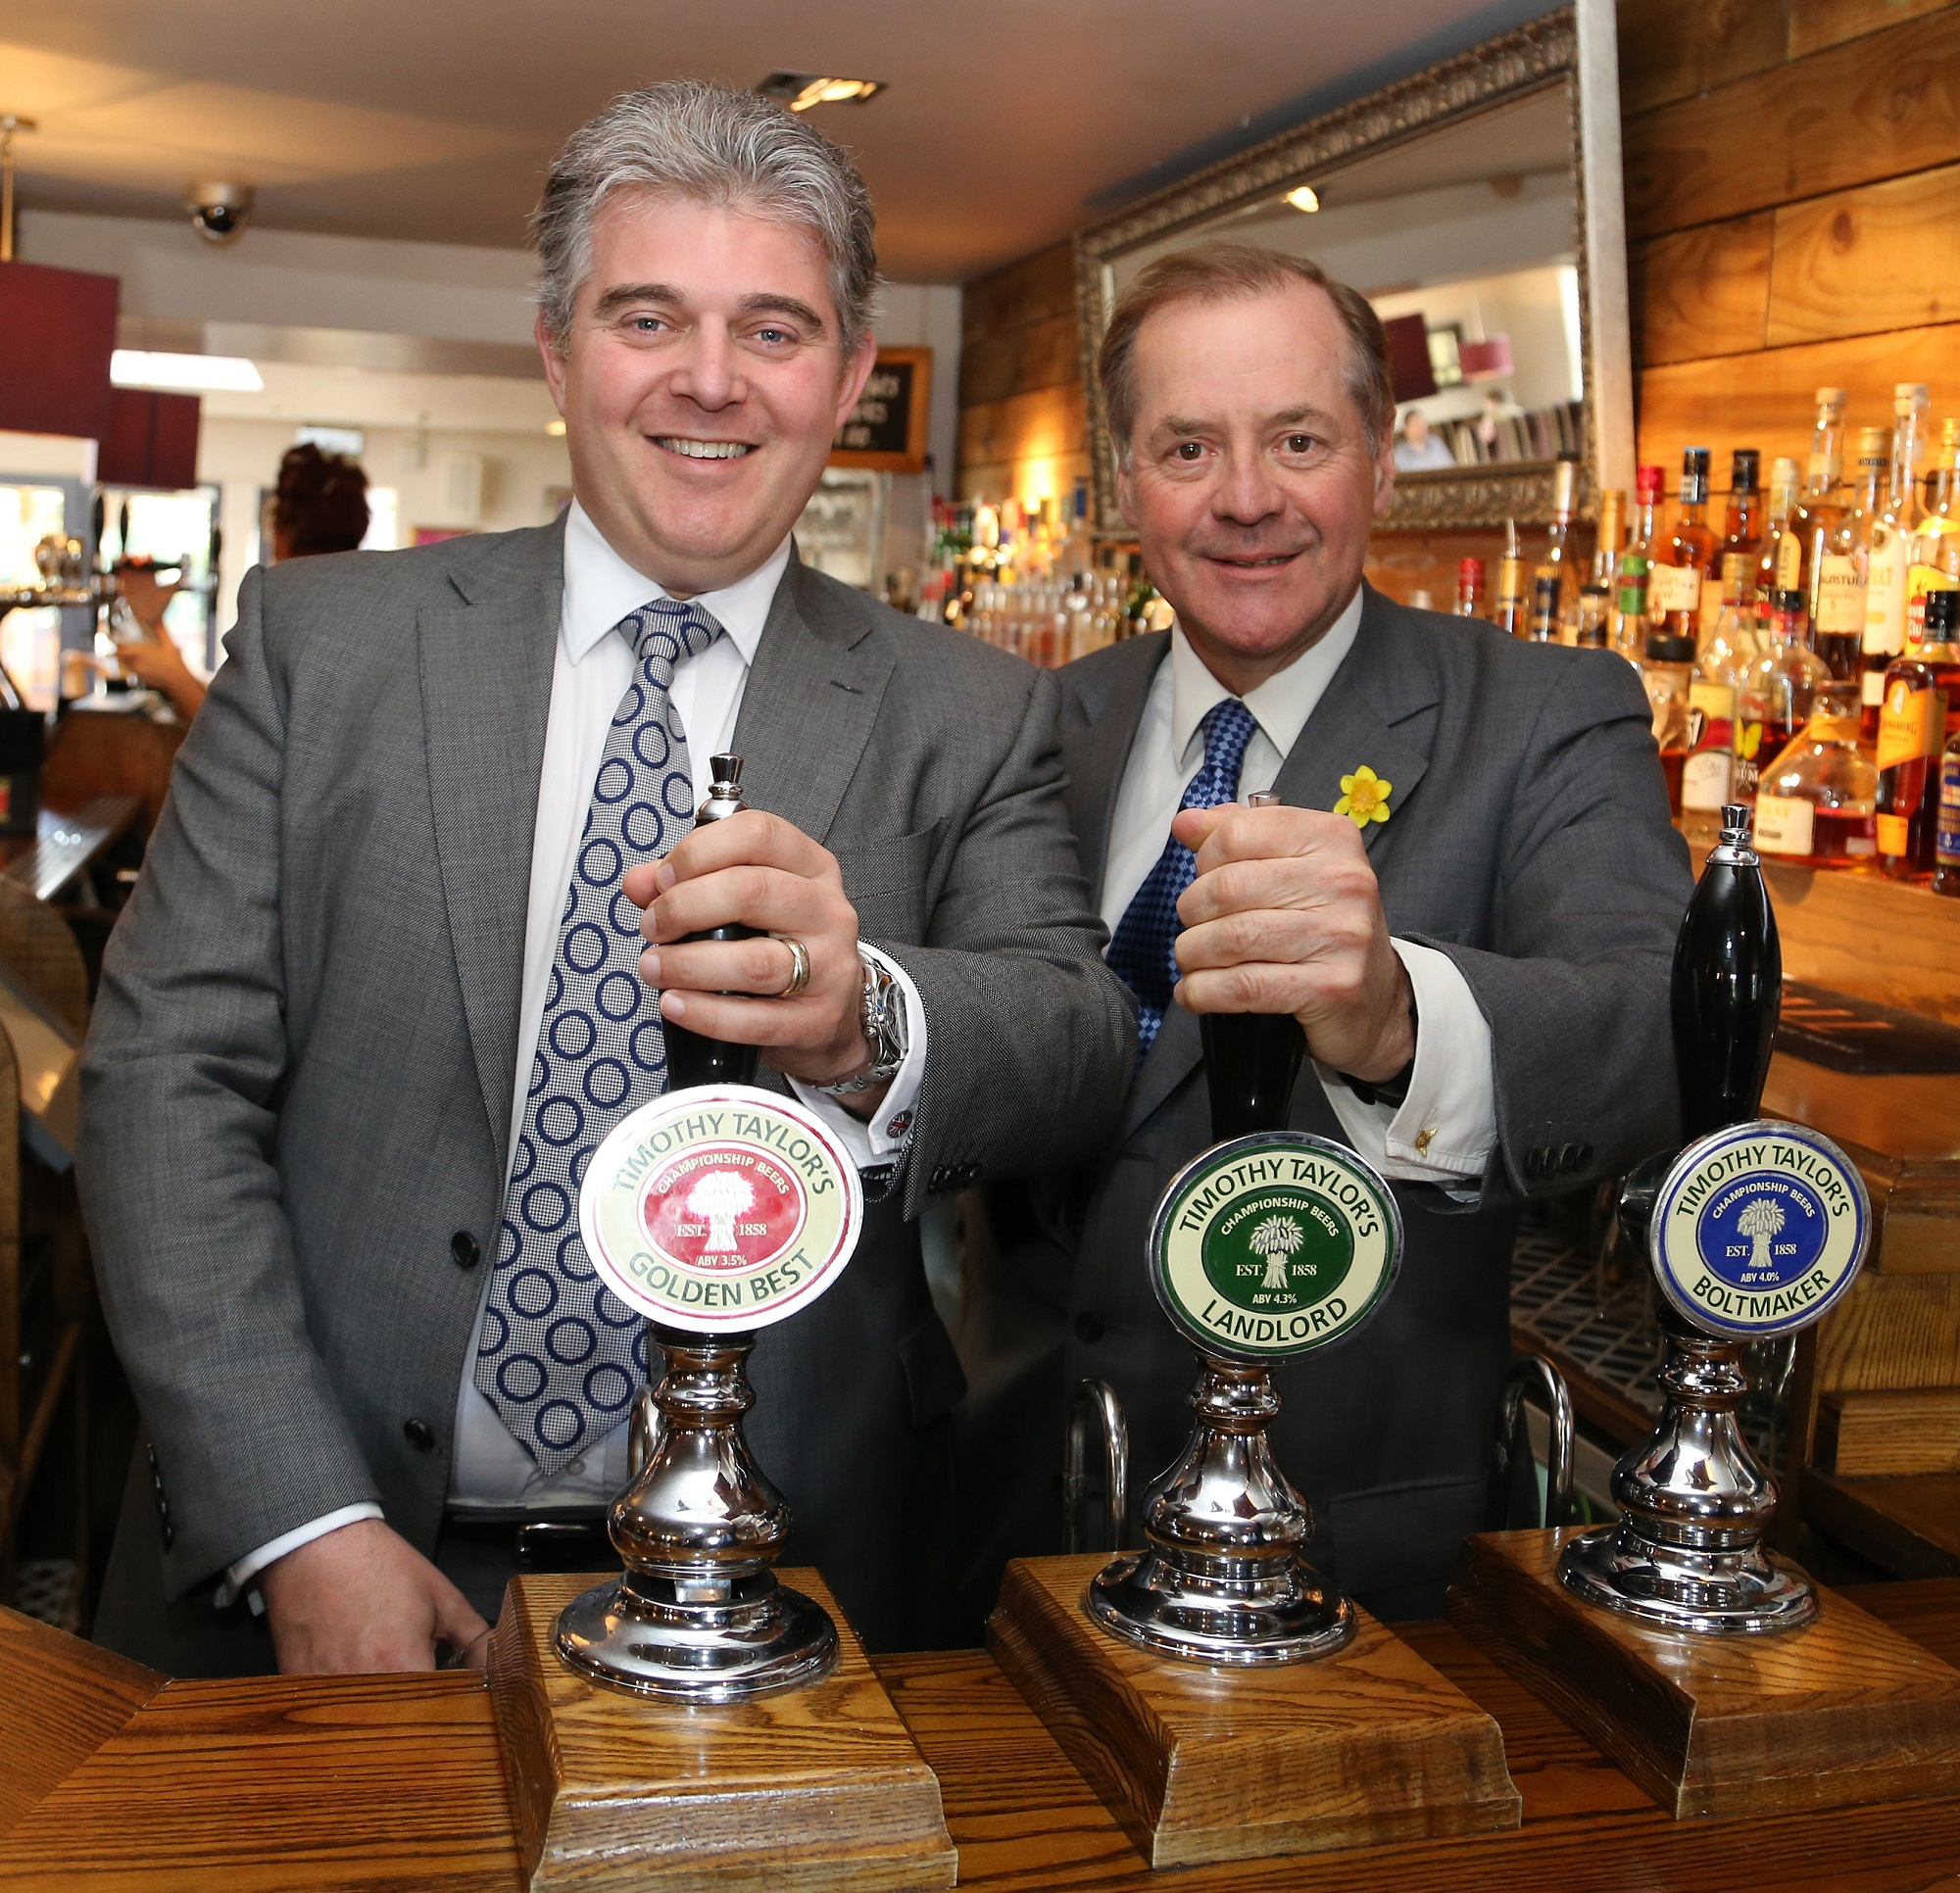 Brandon Lewis, left, and Timothy Taylor's managing director, Charles Dent, at the Lord Rodney in Keighley